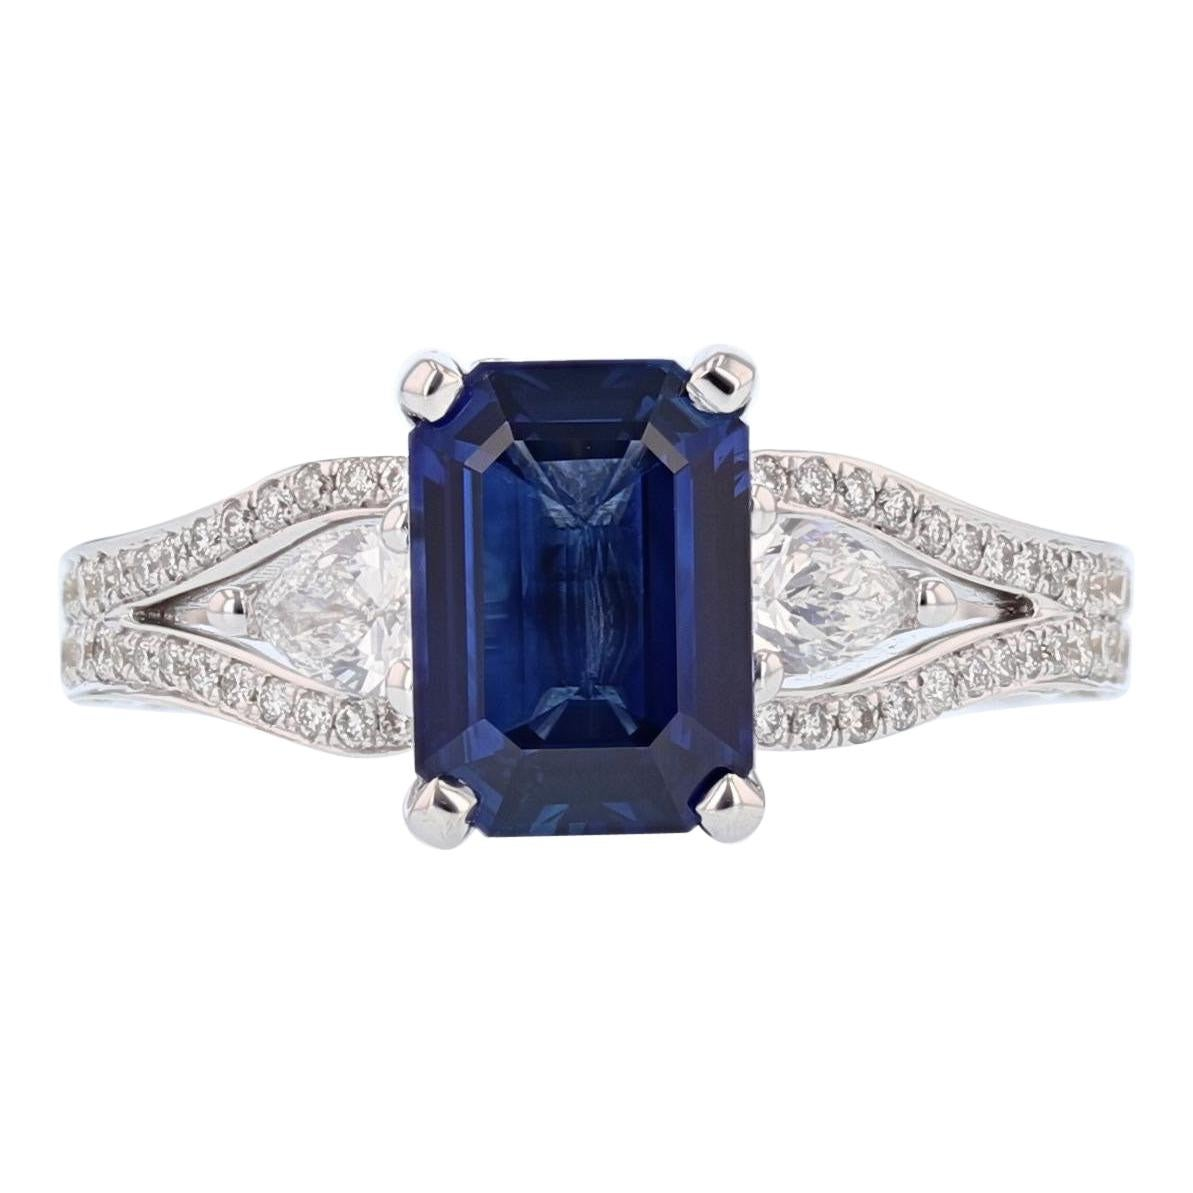 Nazarelle 18 Karat White Gold 2.20 Carat Emerald Cut Sapphire and Diamond Ring